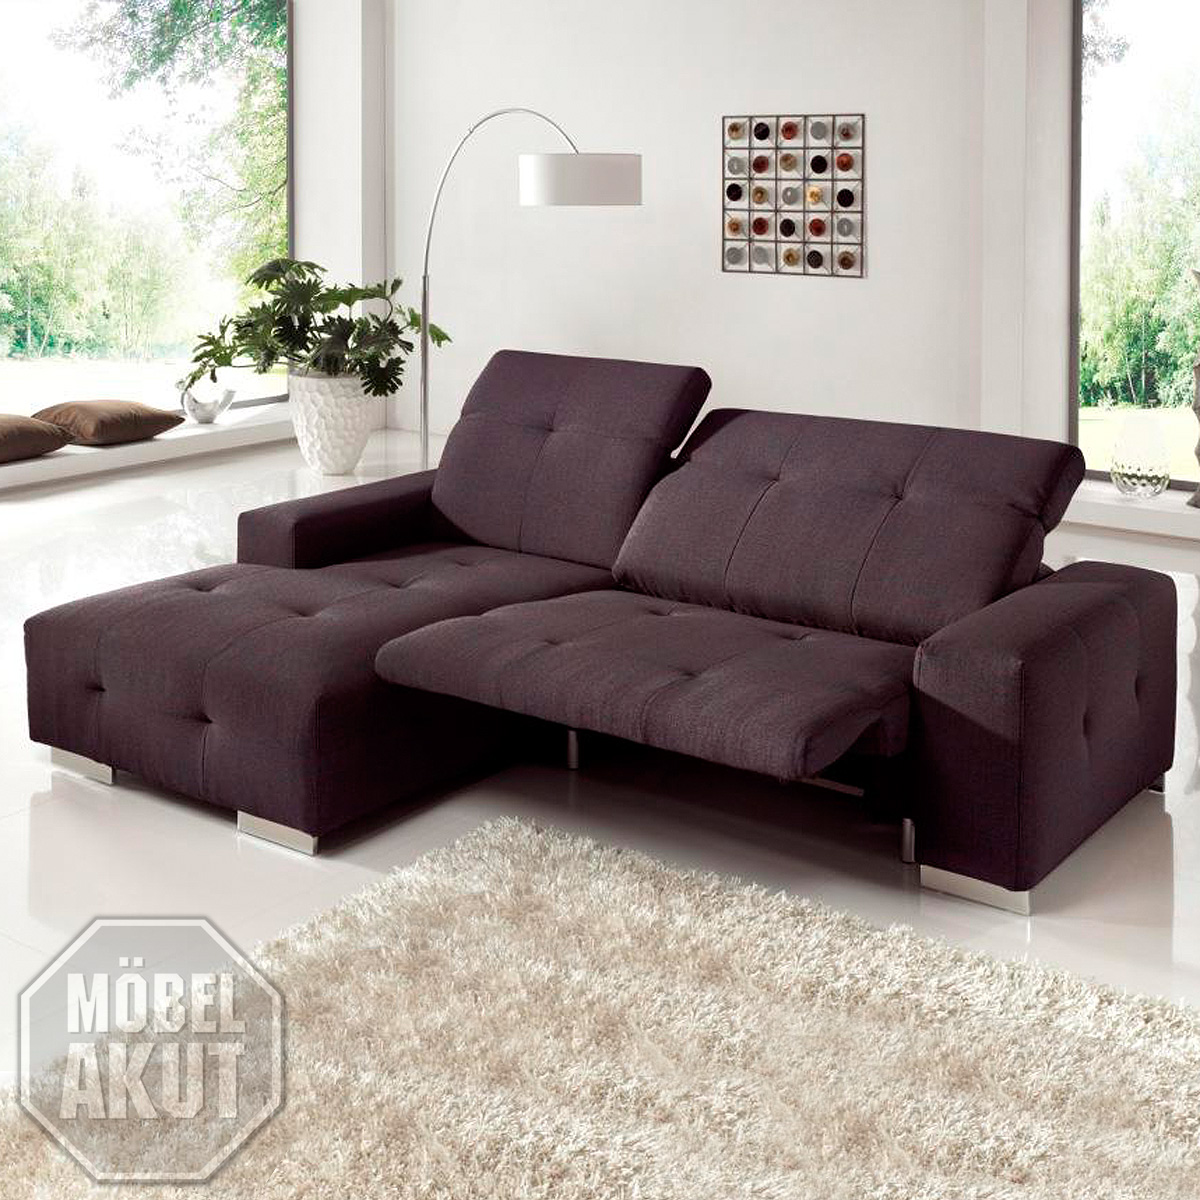 ecksofa francisco sofa lila mit elektrischer relaxfunktion. Black Bedroom Furniture Sets. Home Design Ideas